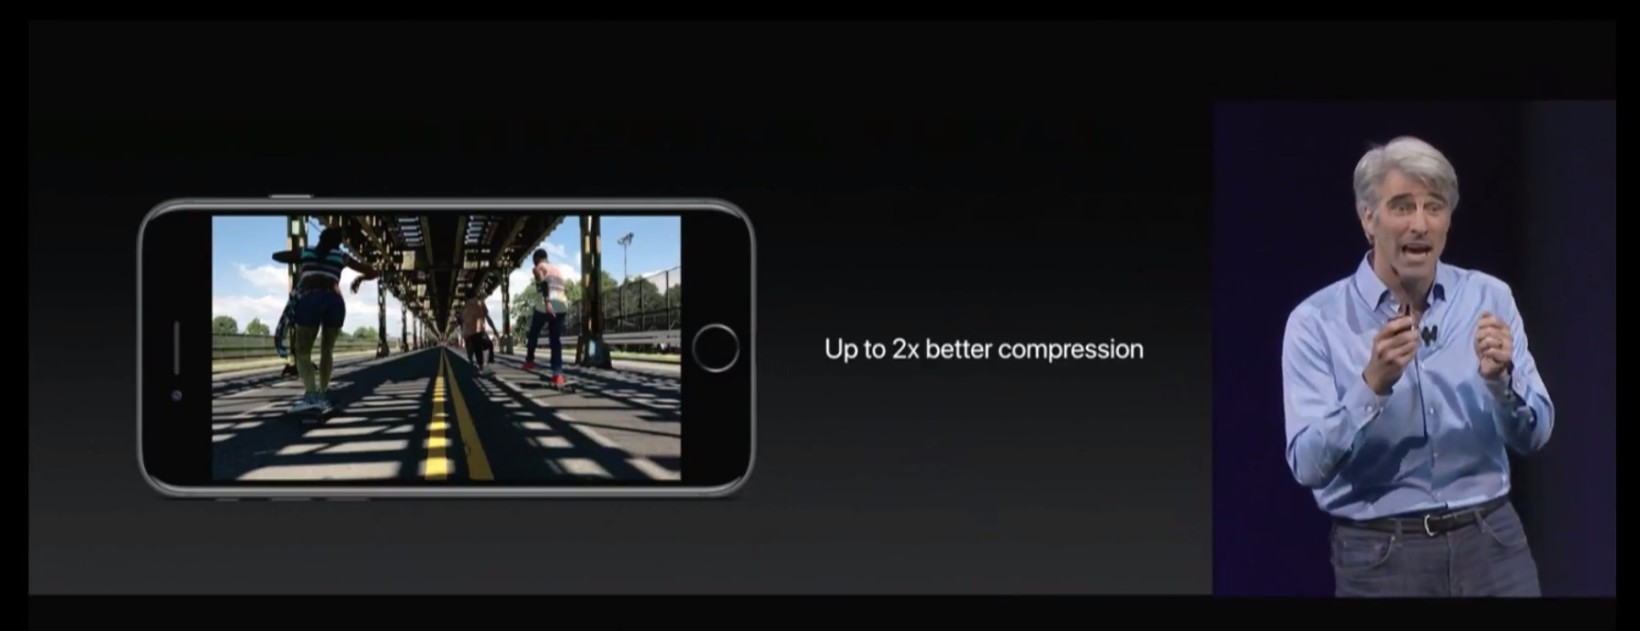 iOS 11's new image compression makes your photos smaller